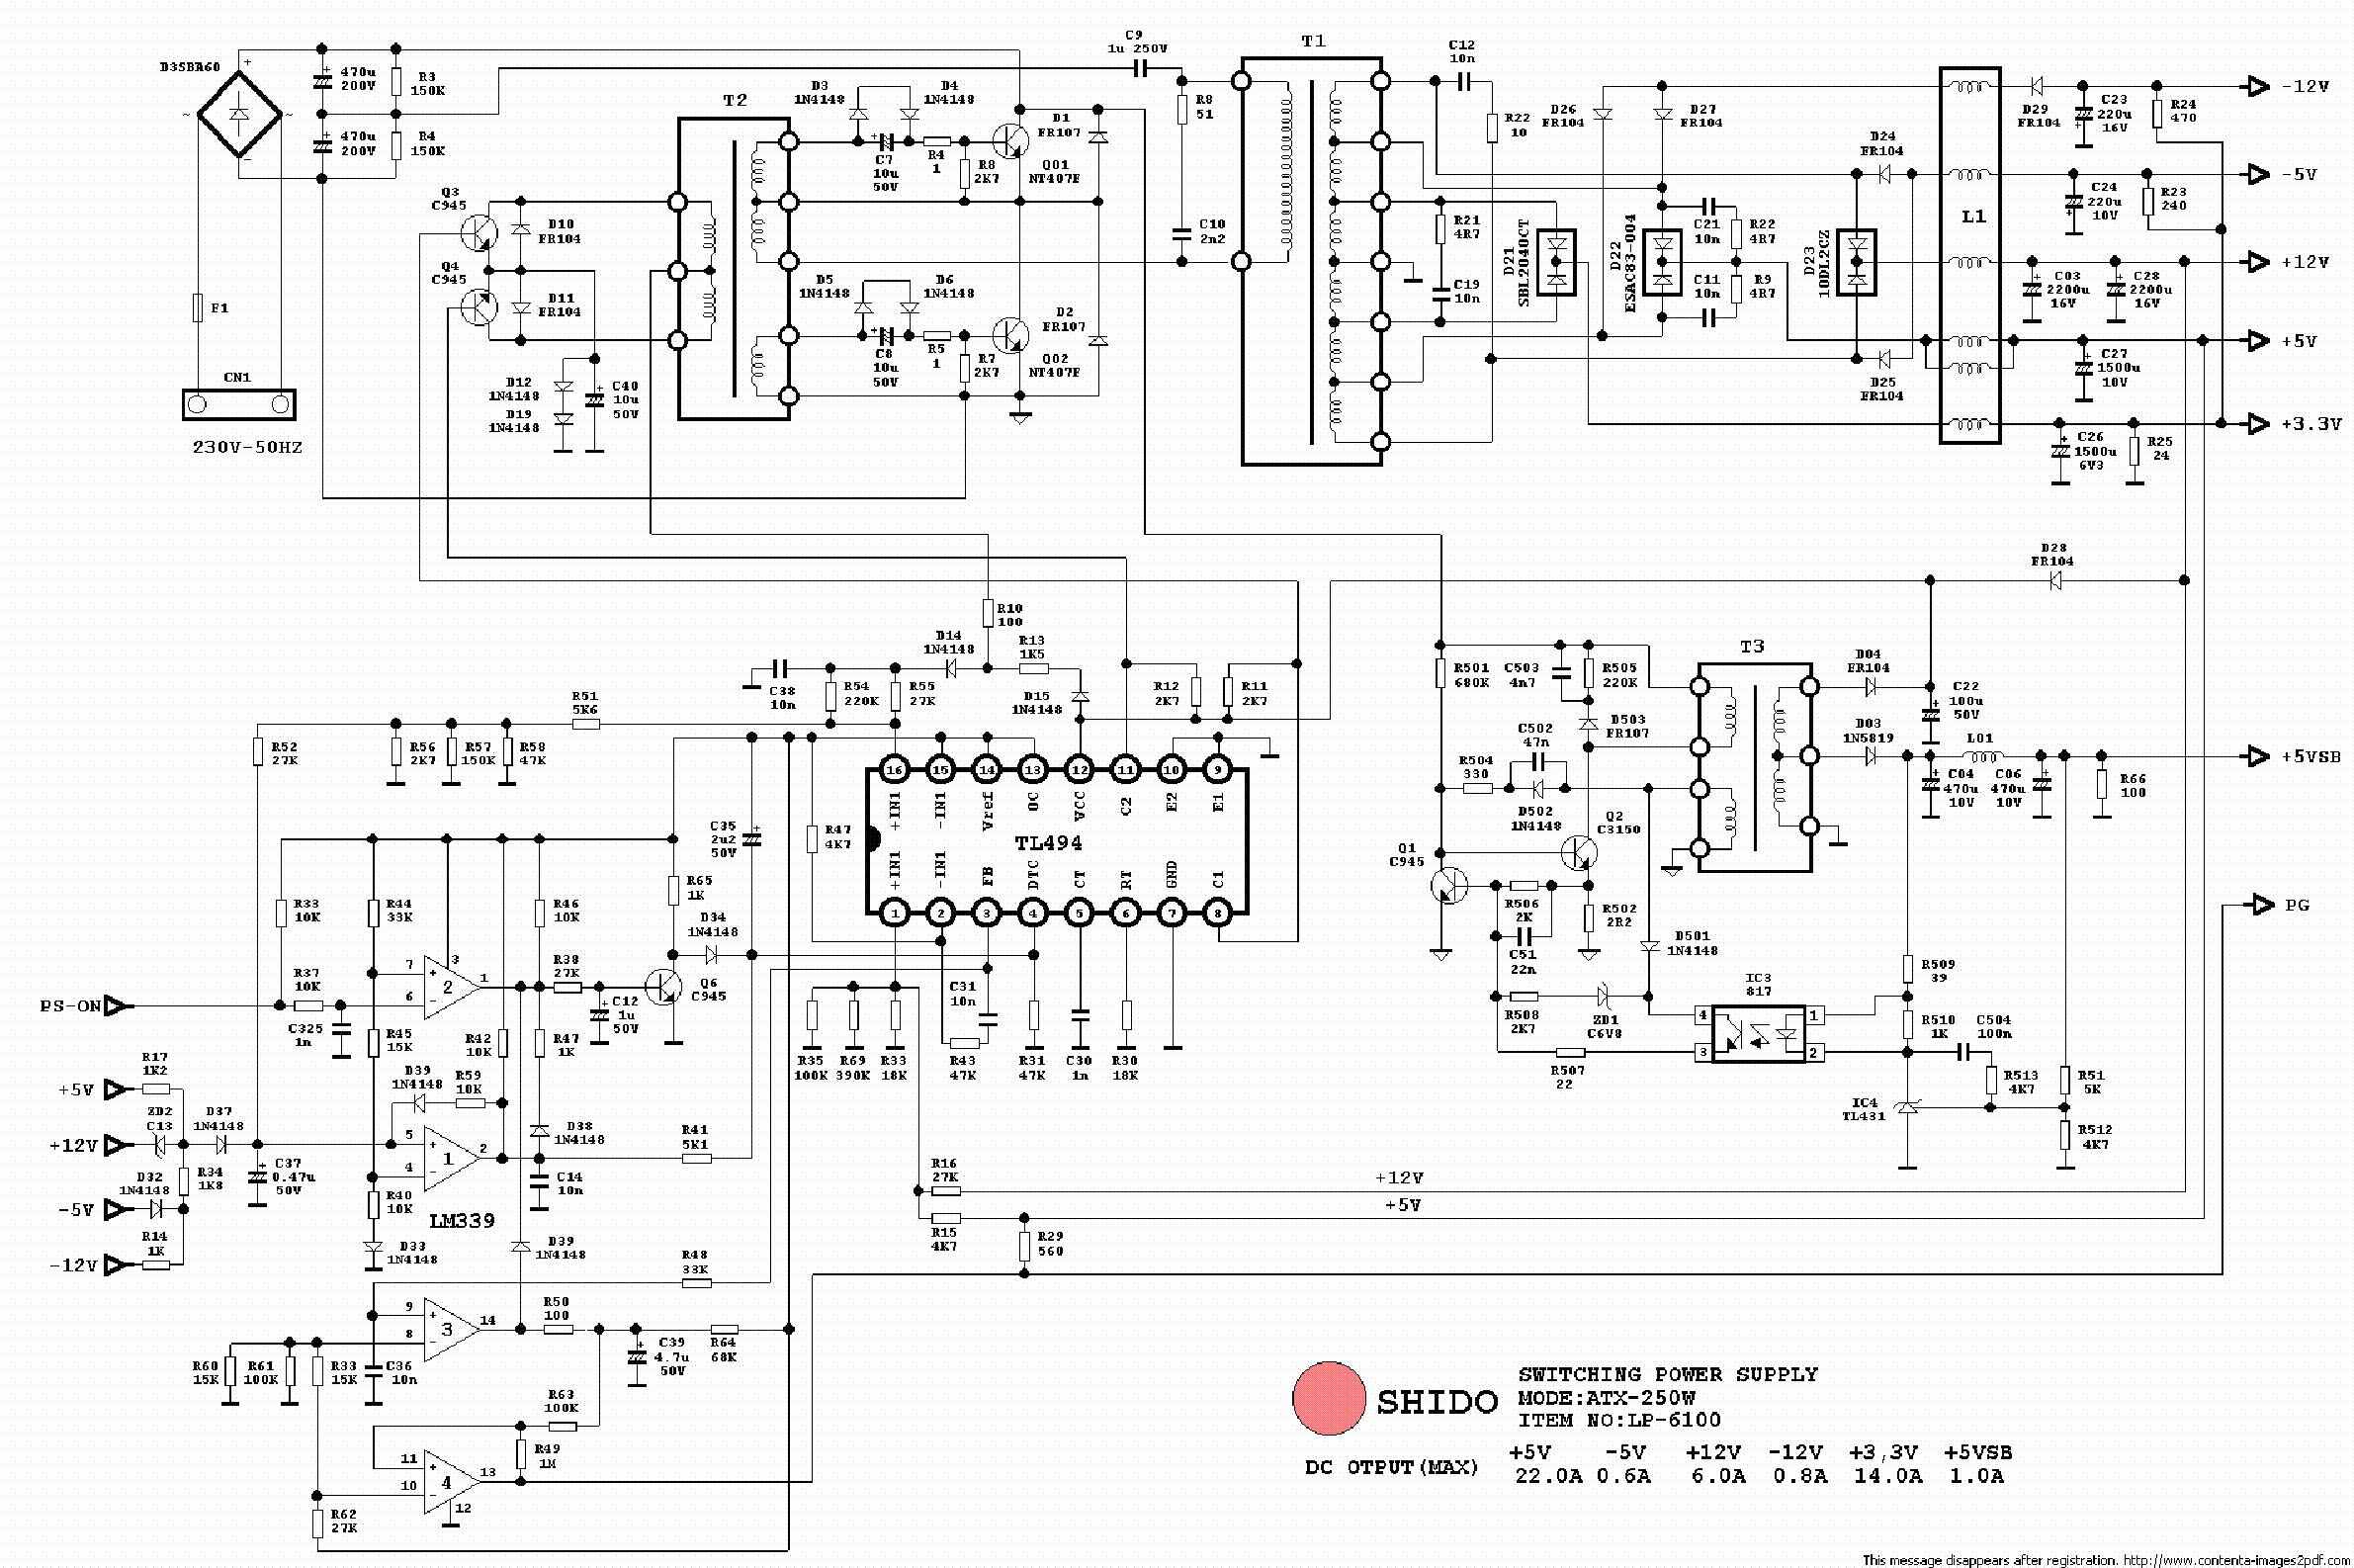 ATX Power Supply Schematic http://elektrotanya.com/shido_atx-250_pc_power_supply_sch.pdf/download.html